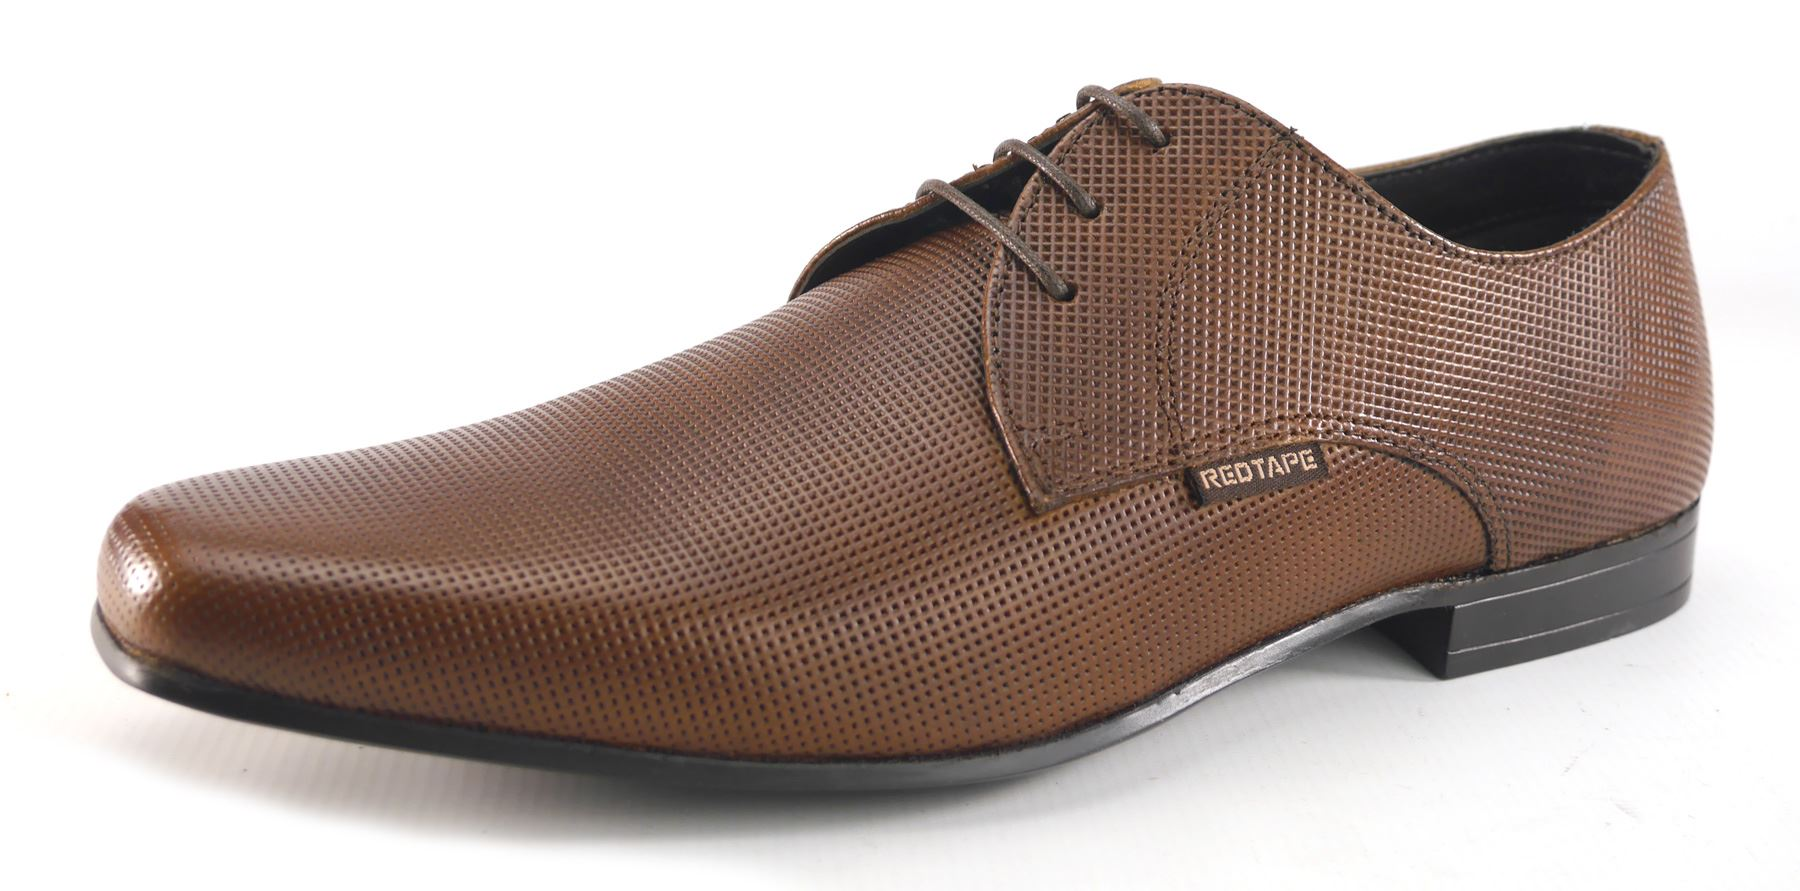 Red Tape Mens Formal Casual Tan Pointy Leather Lace Up Shoes Tan